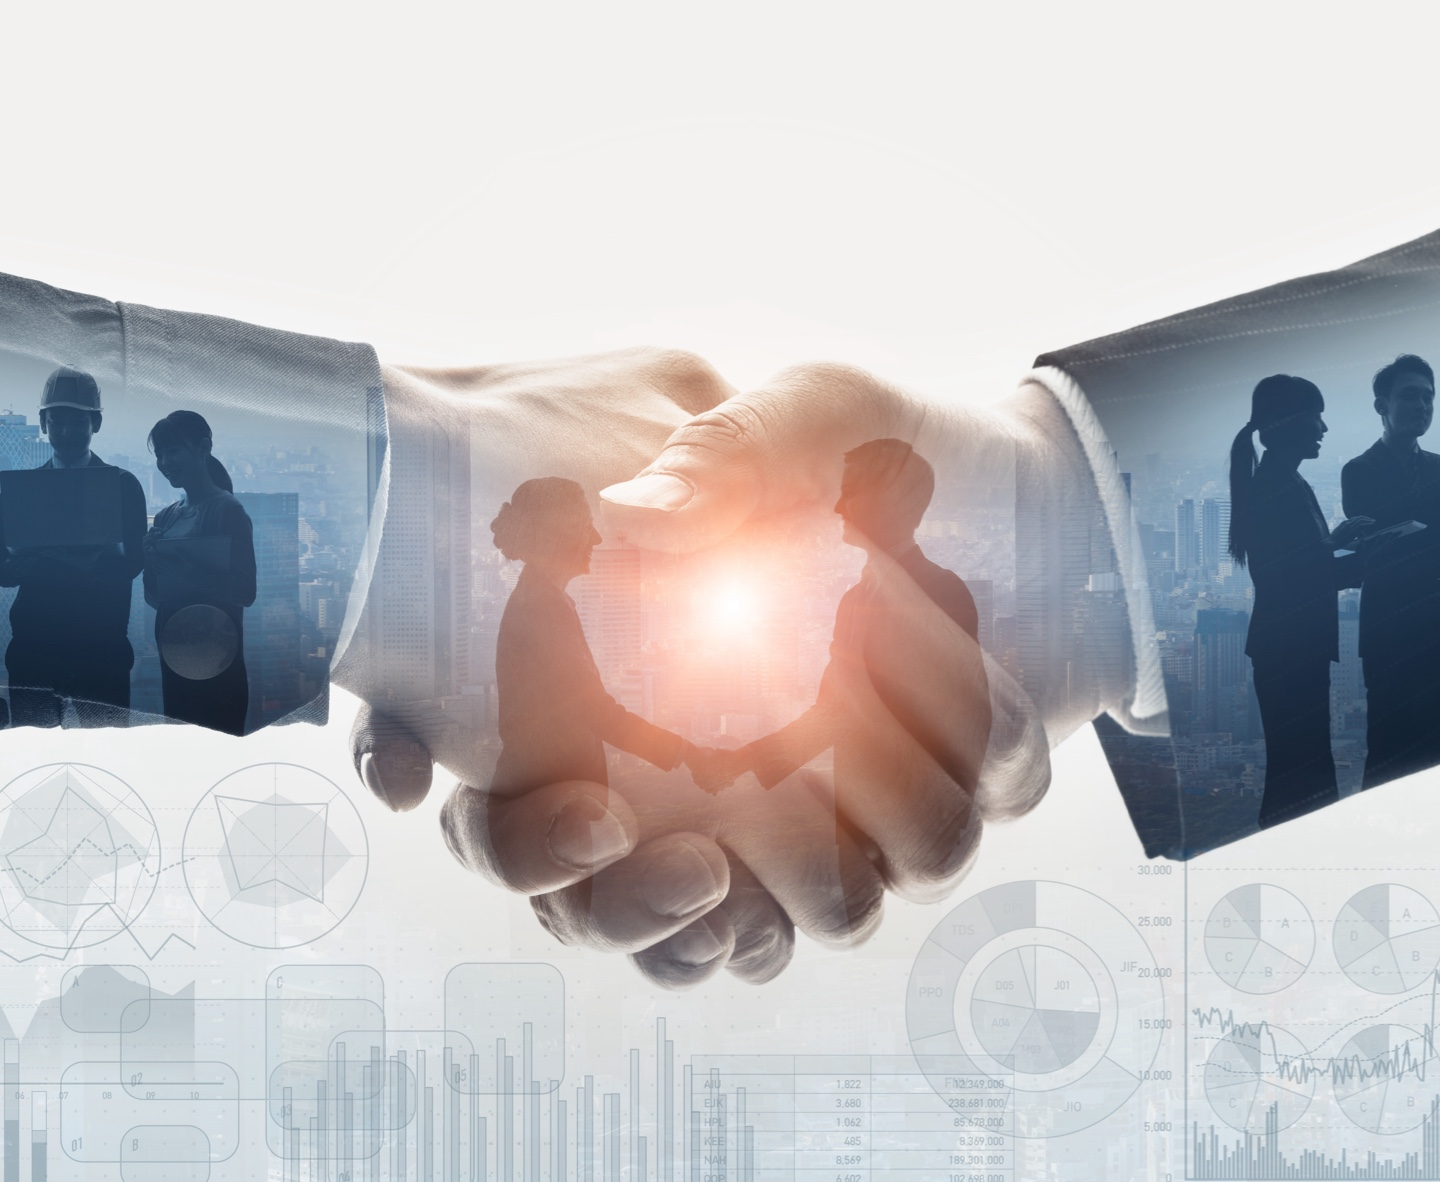 Executives making referrals and shaking hands